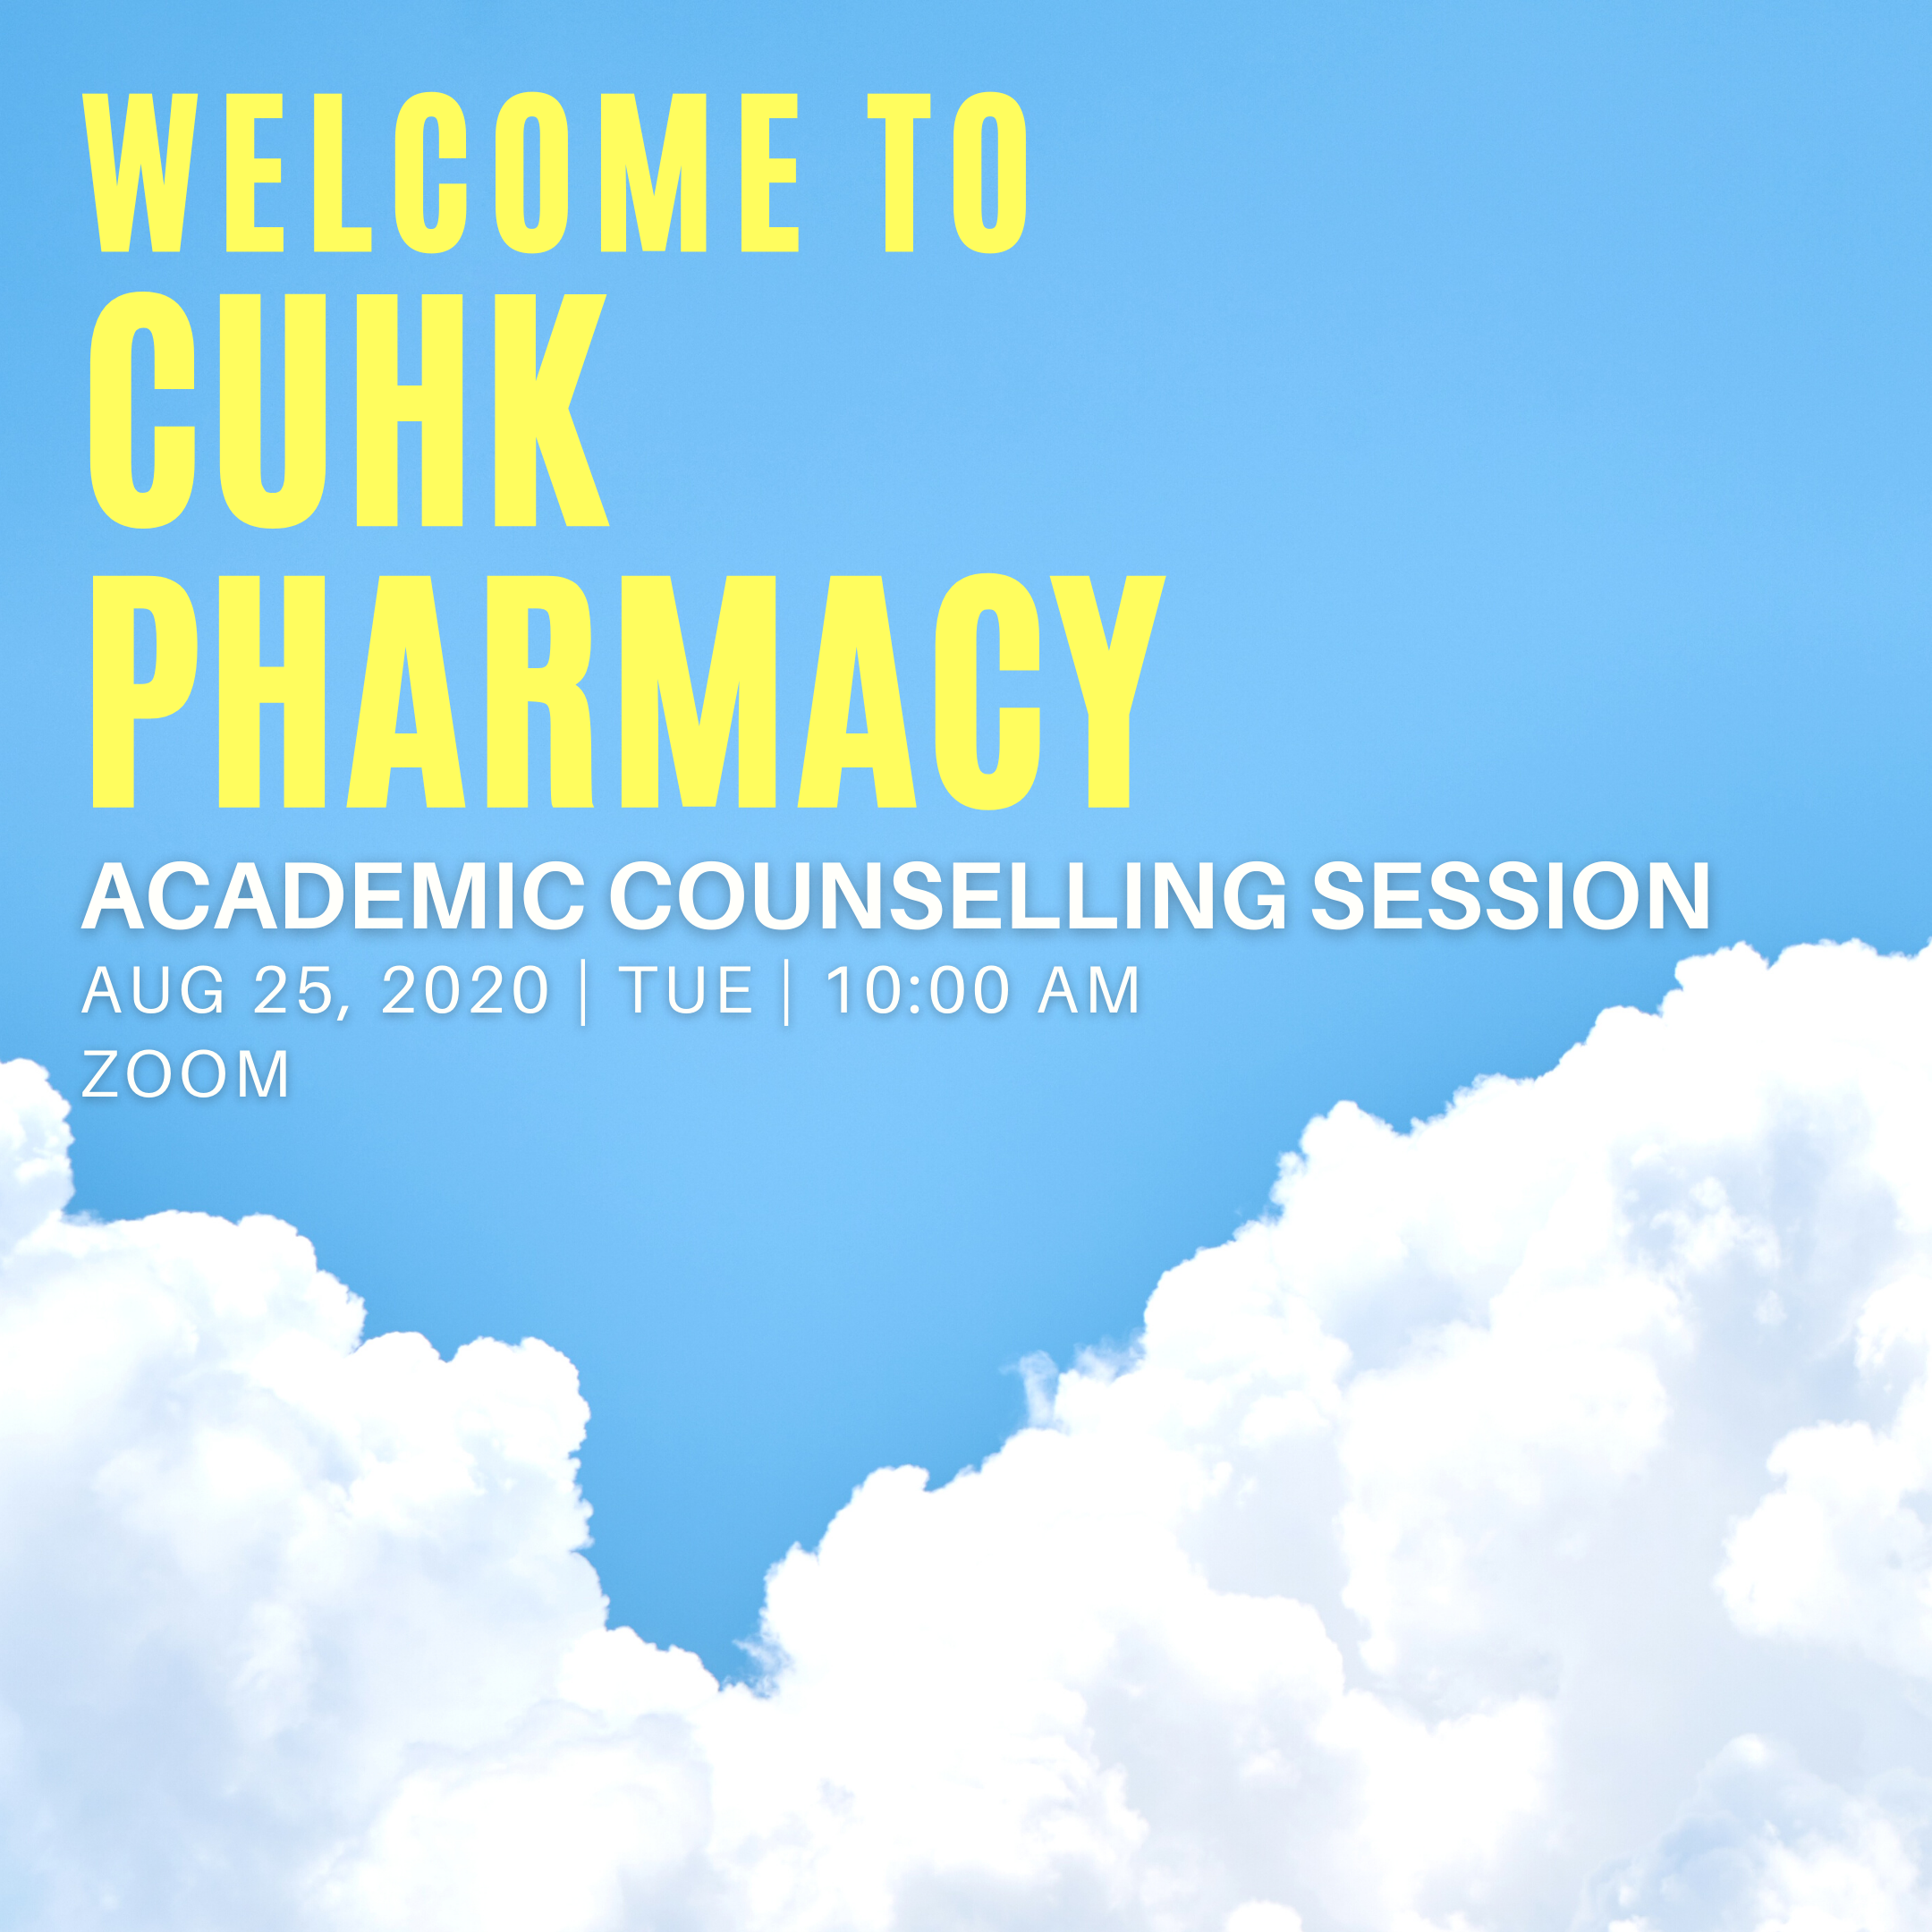 Academic Counselling Session